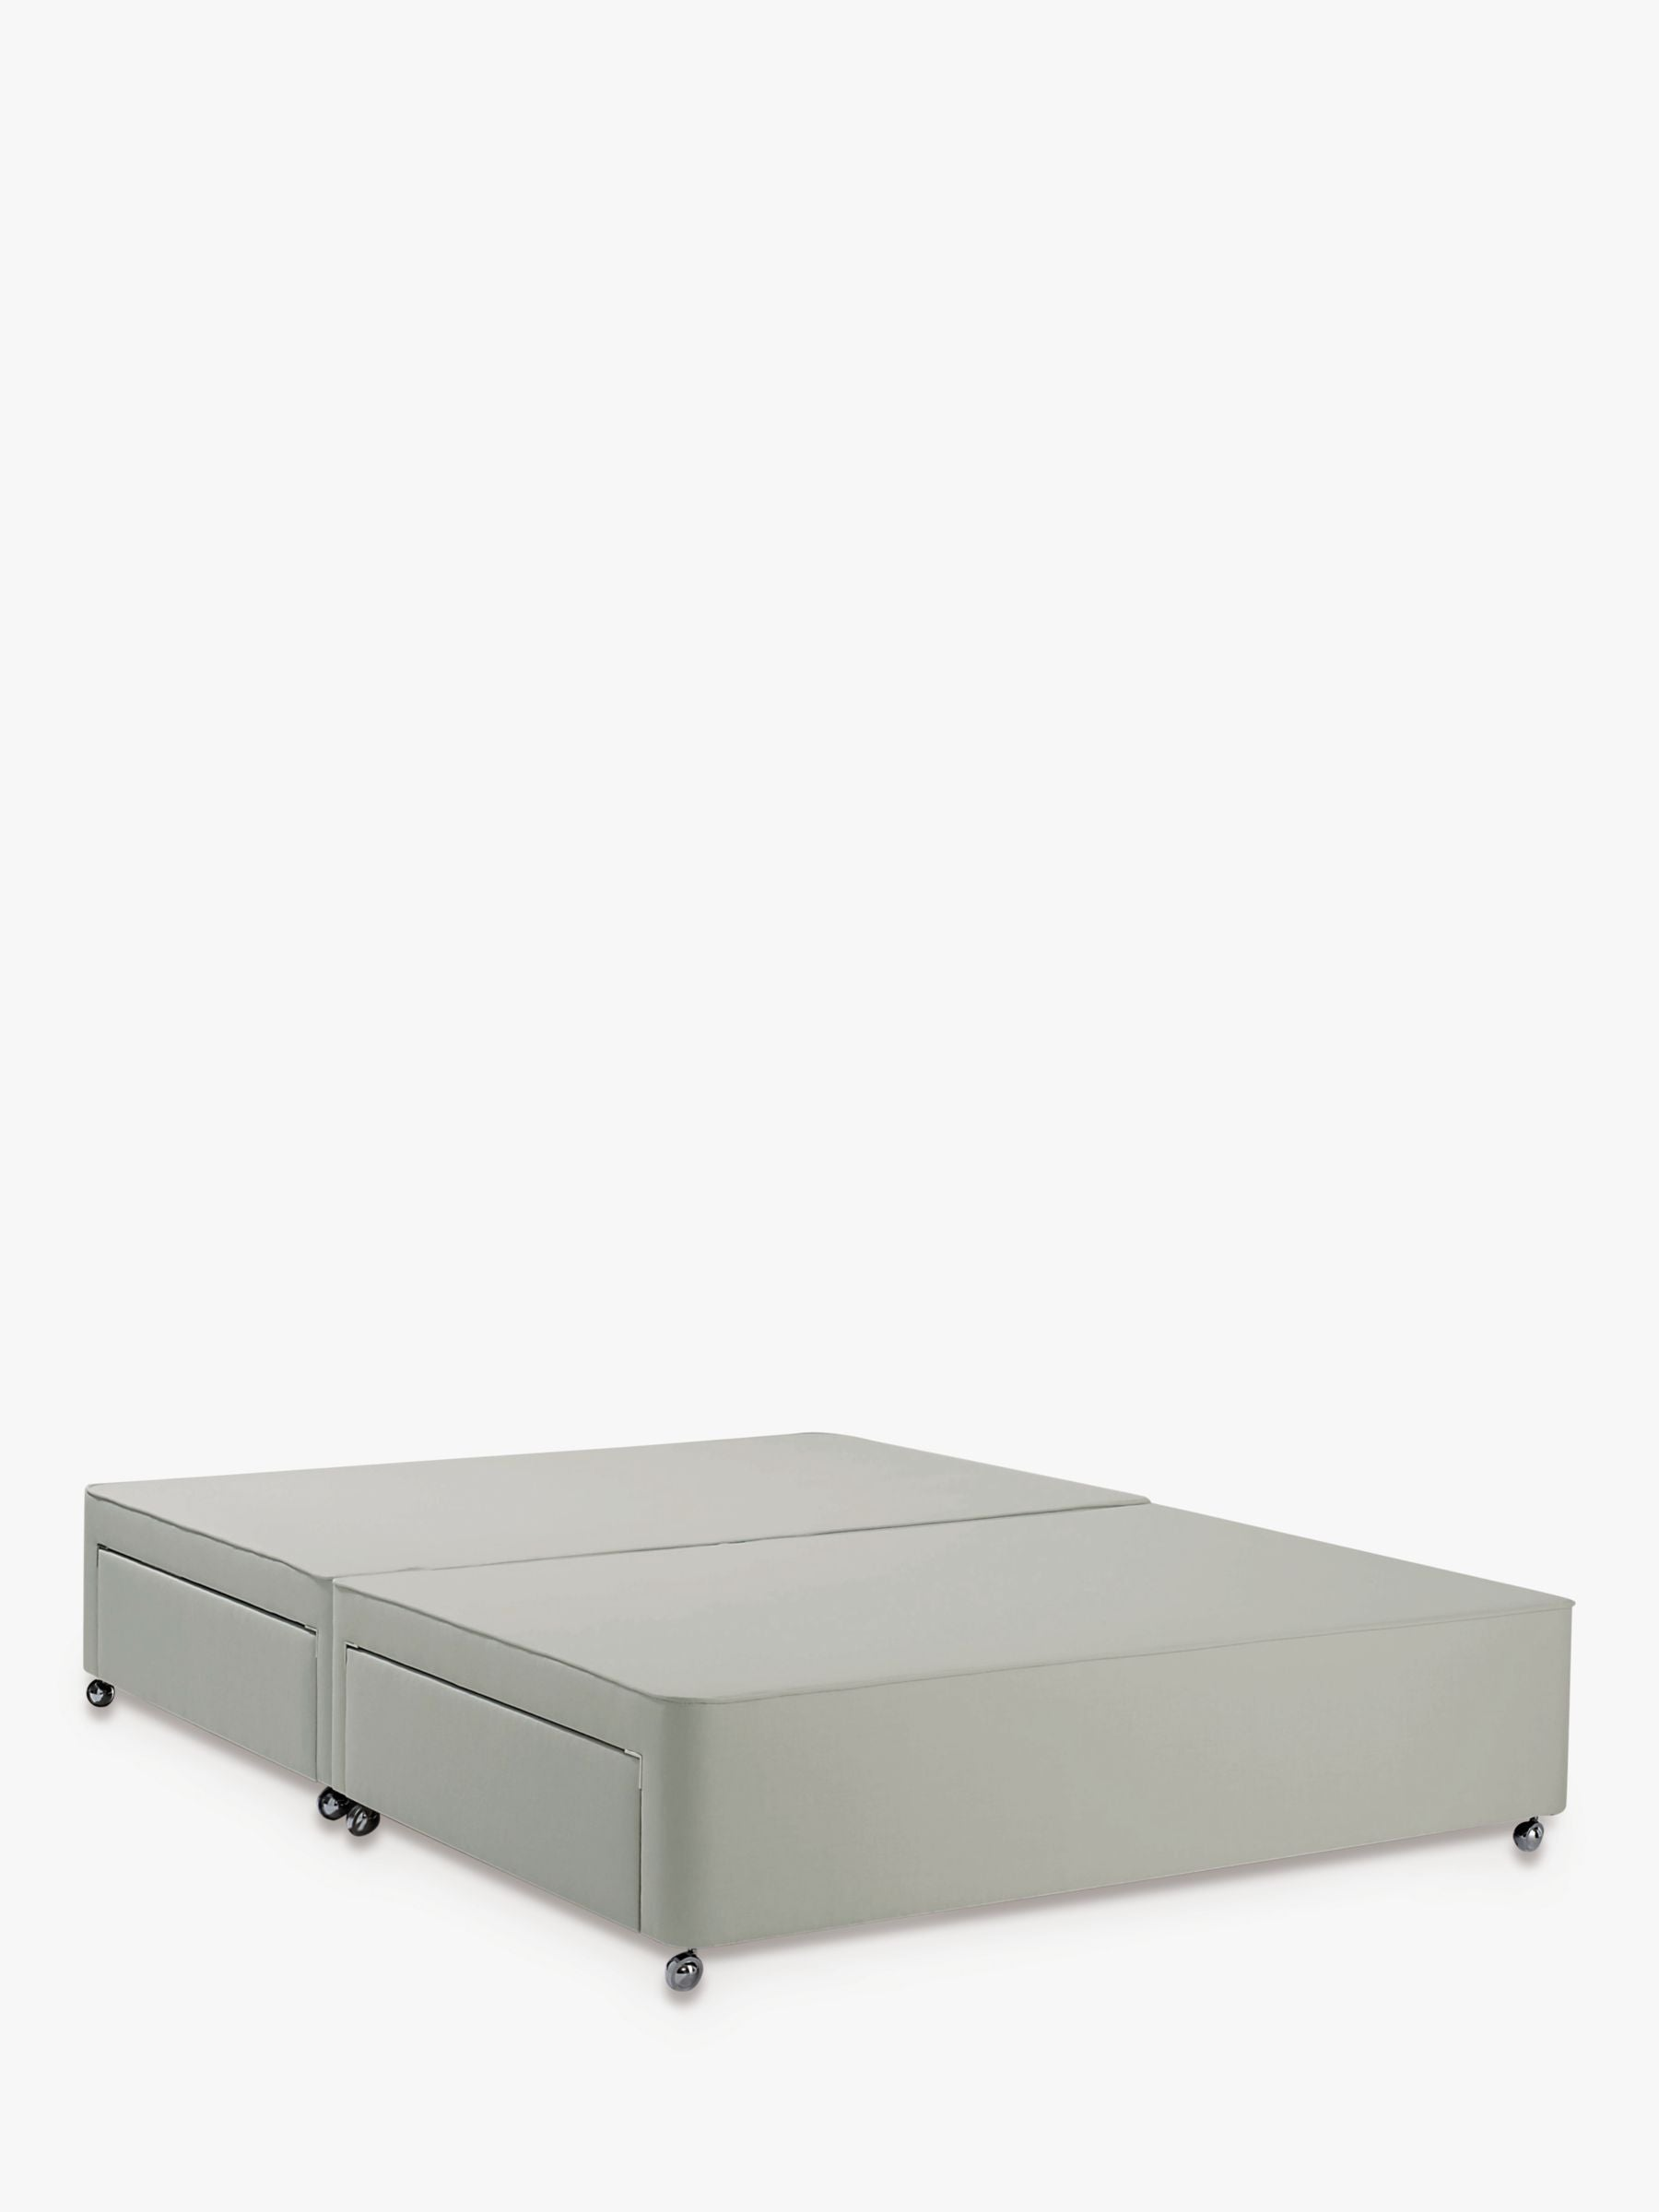 John Lewis & Partners Non Sprung 4 Drawer Storage Upholstered Divan Base, Double, Canvas Stone Grey, FSC-Certified (Pine)